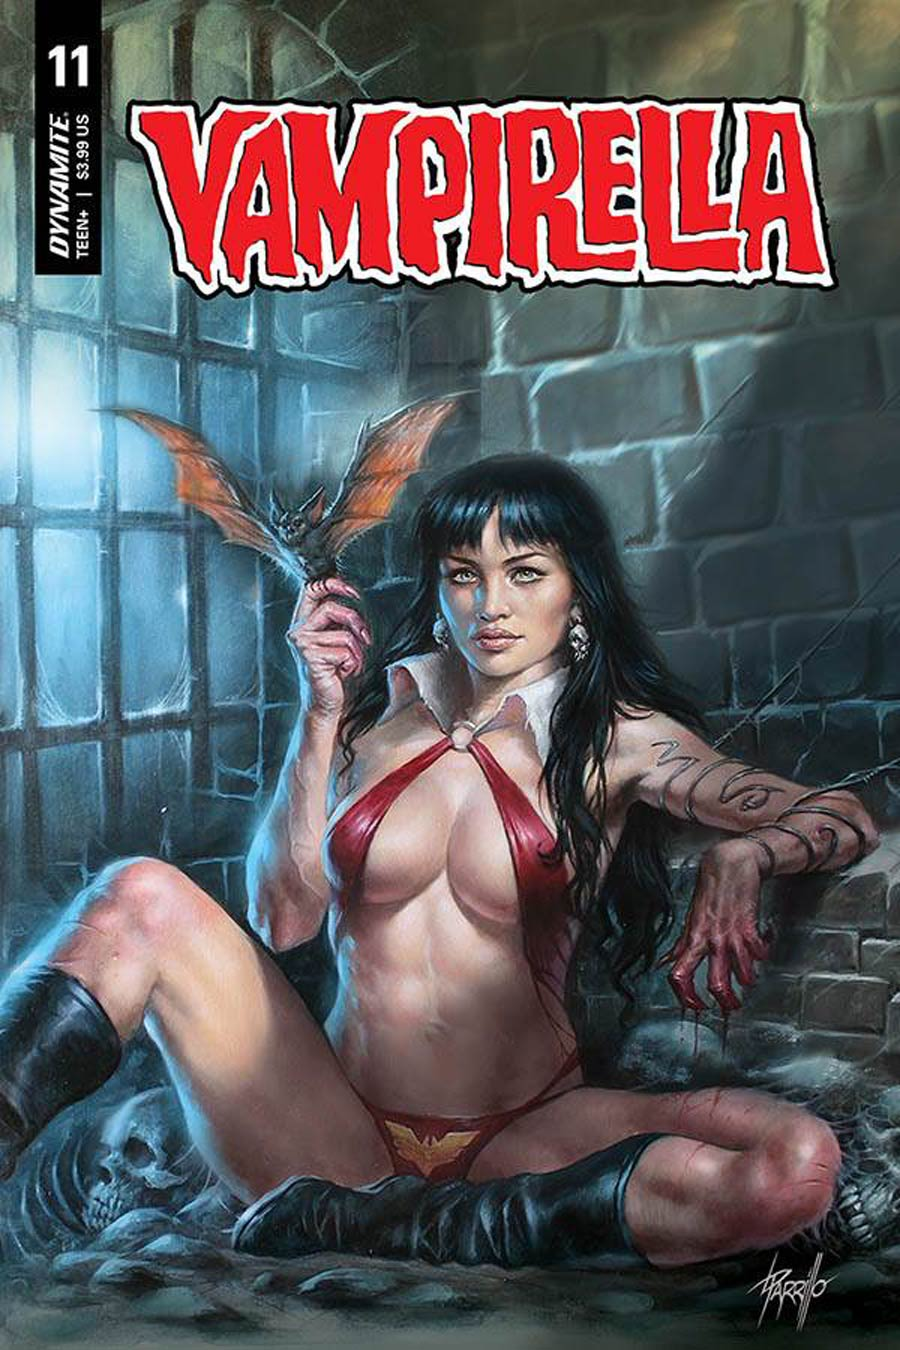 Vampirella Vol 8 #11 Cover A Regular Lucio Parrillo Cover